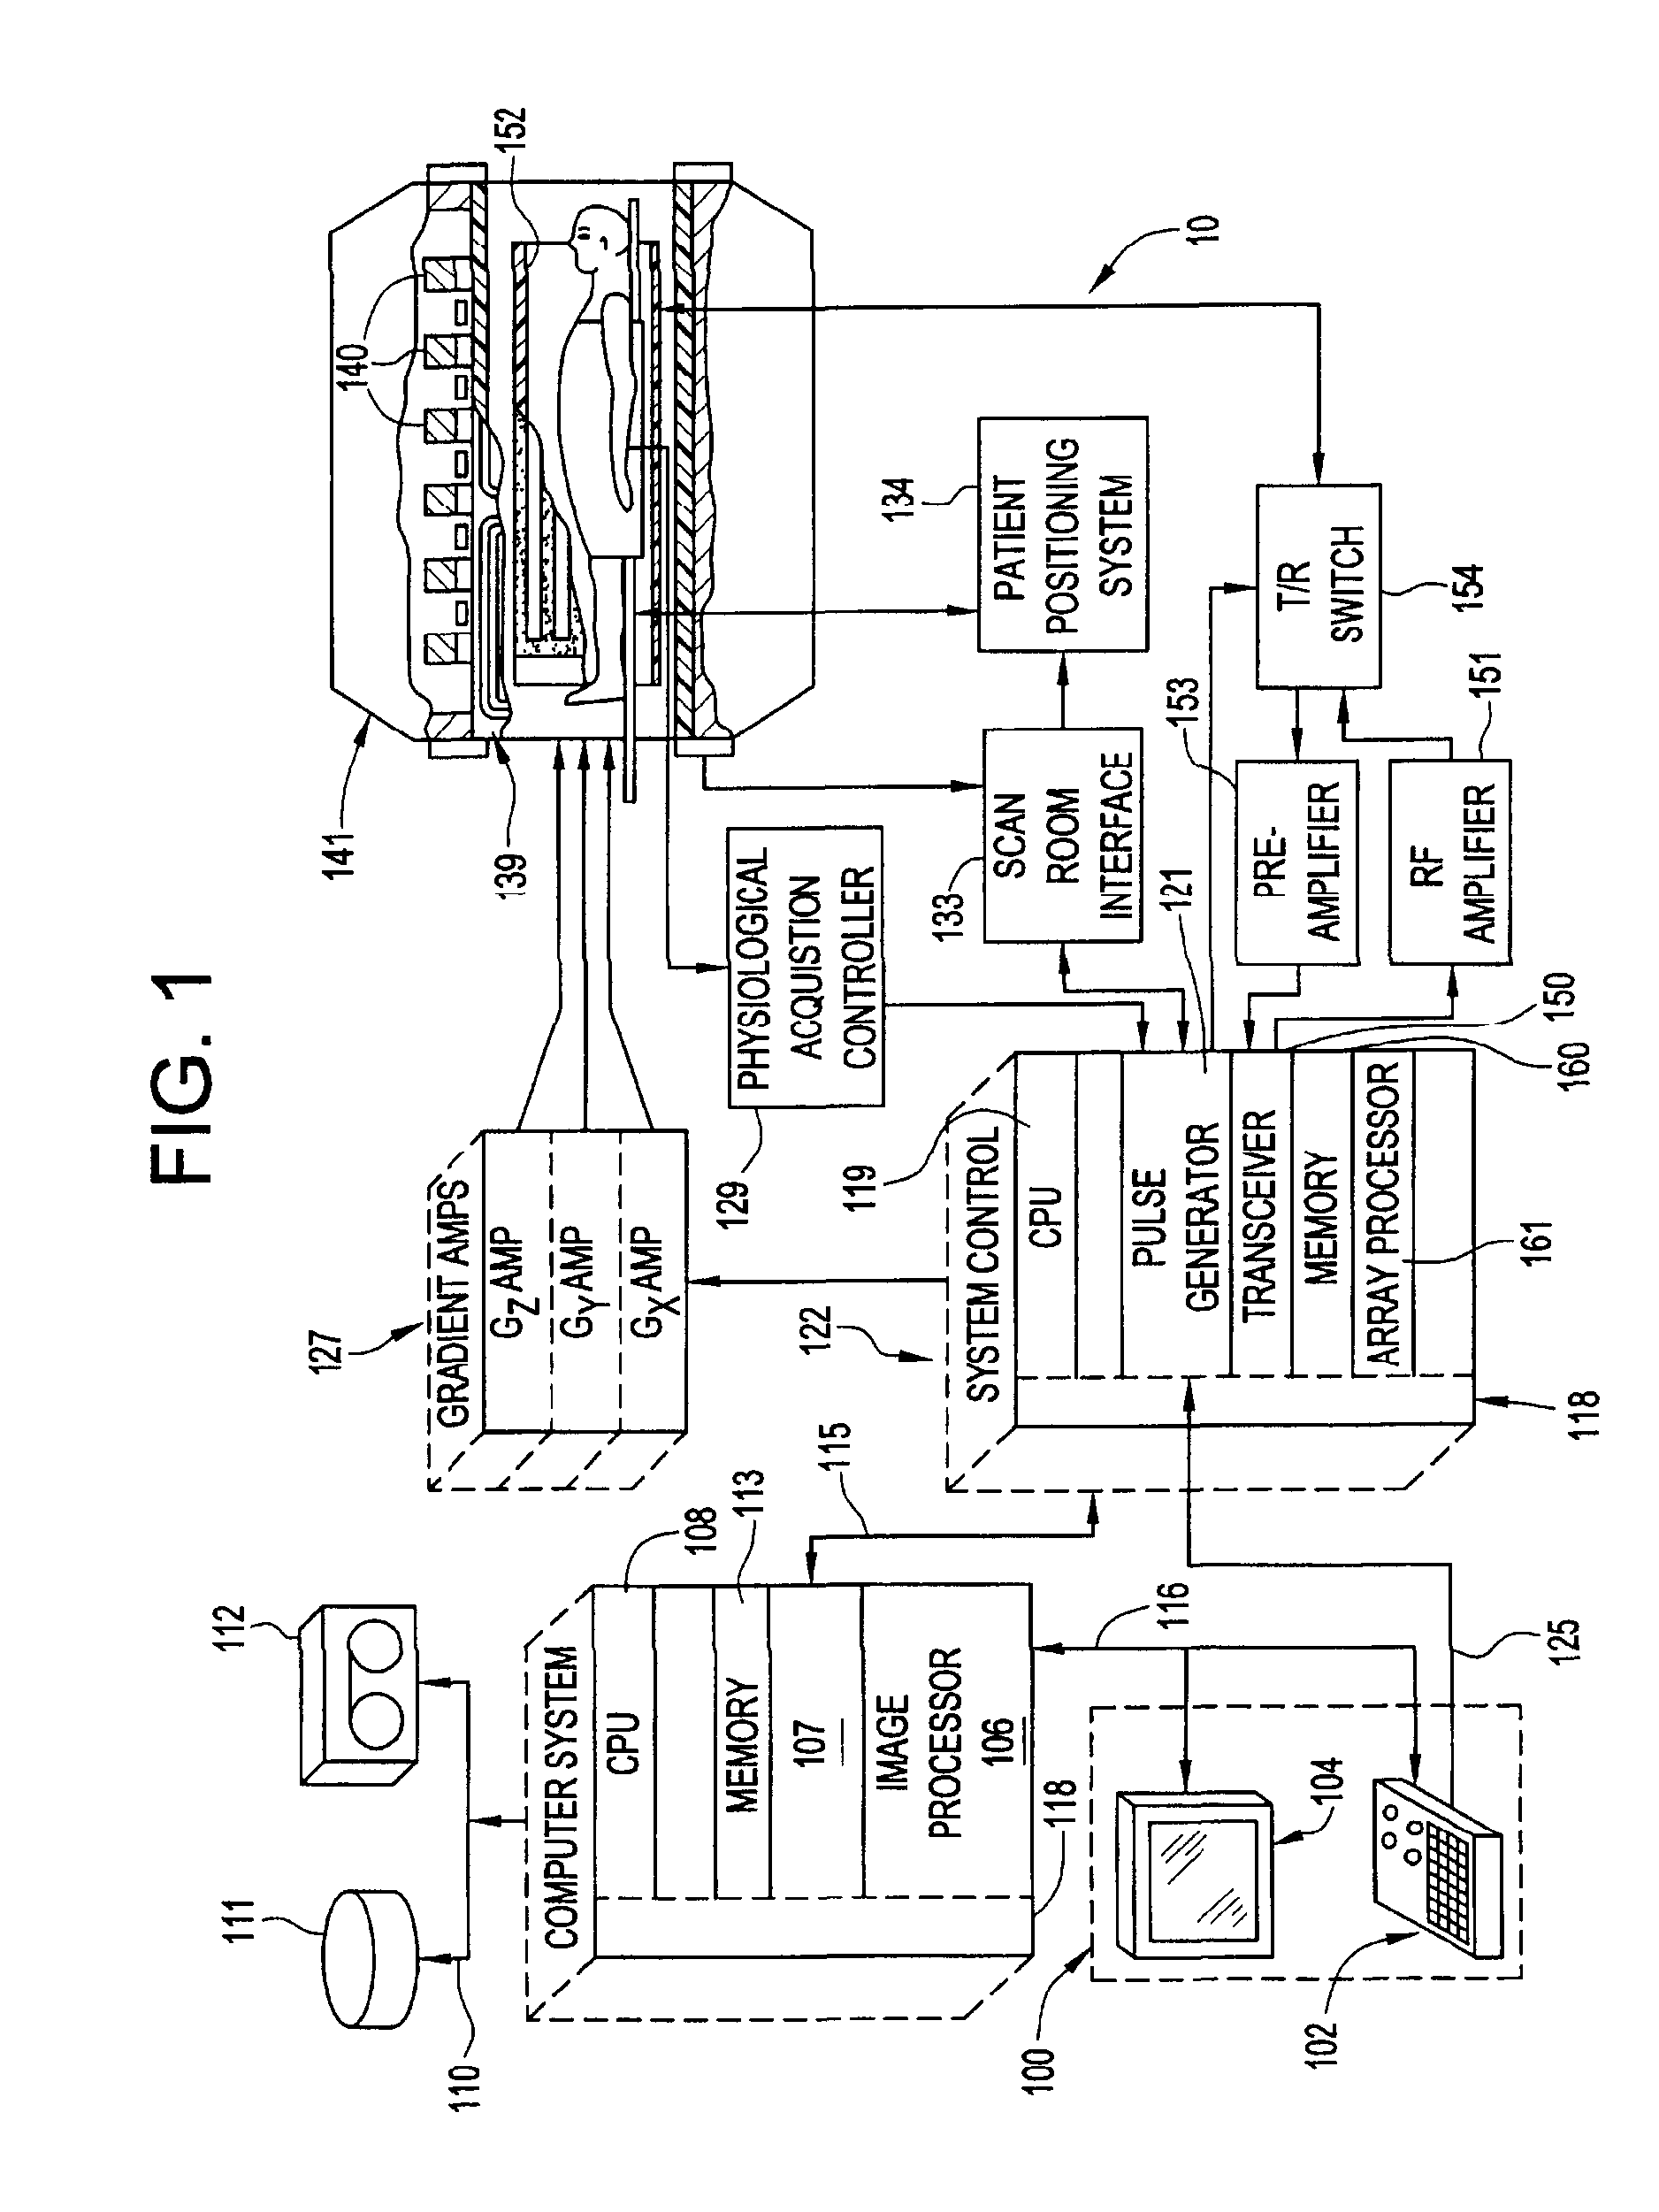 Patent Us20040189298 Gradient Coil Apparatus For Magnetic Variable Resistor Circuit Diagram Physicslab January 2007 Part 1 Drawing